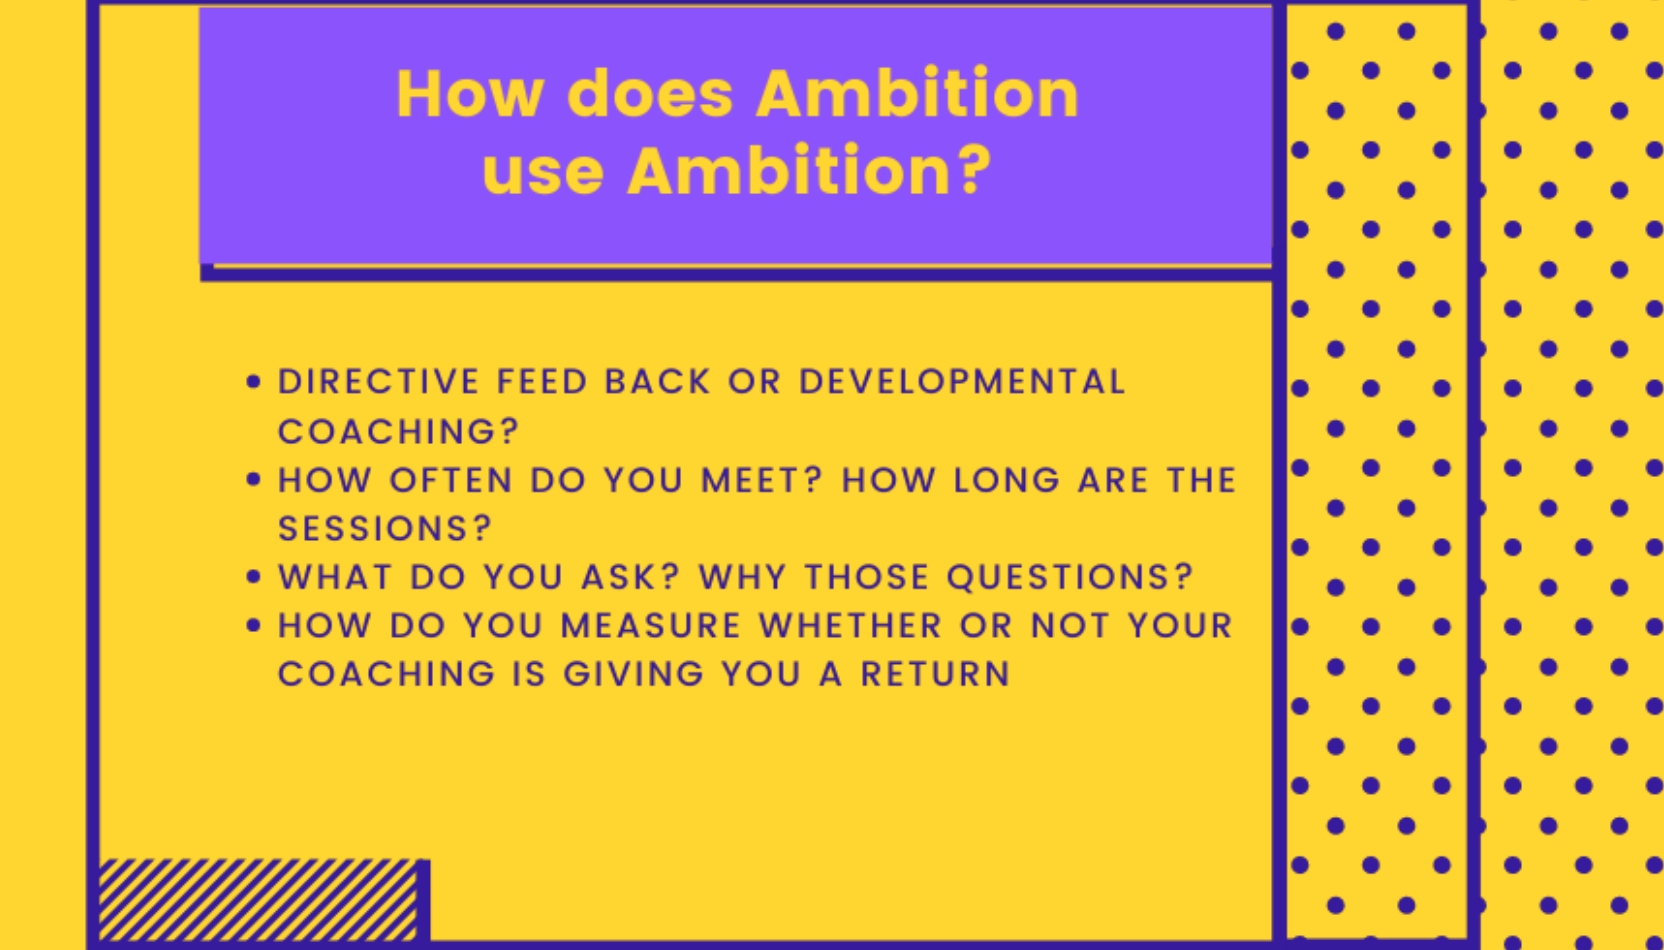 how does ambition use ambition graphic